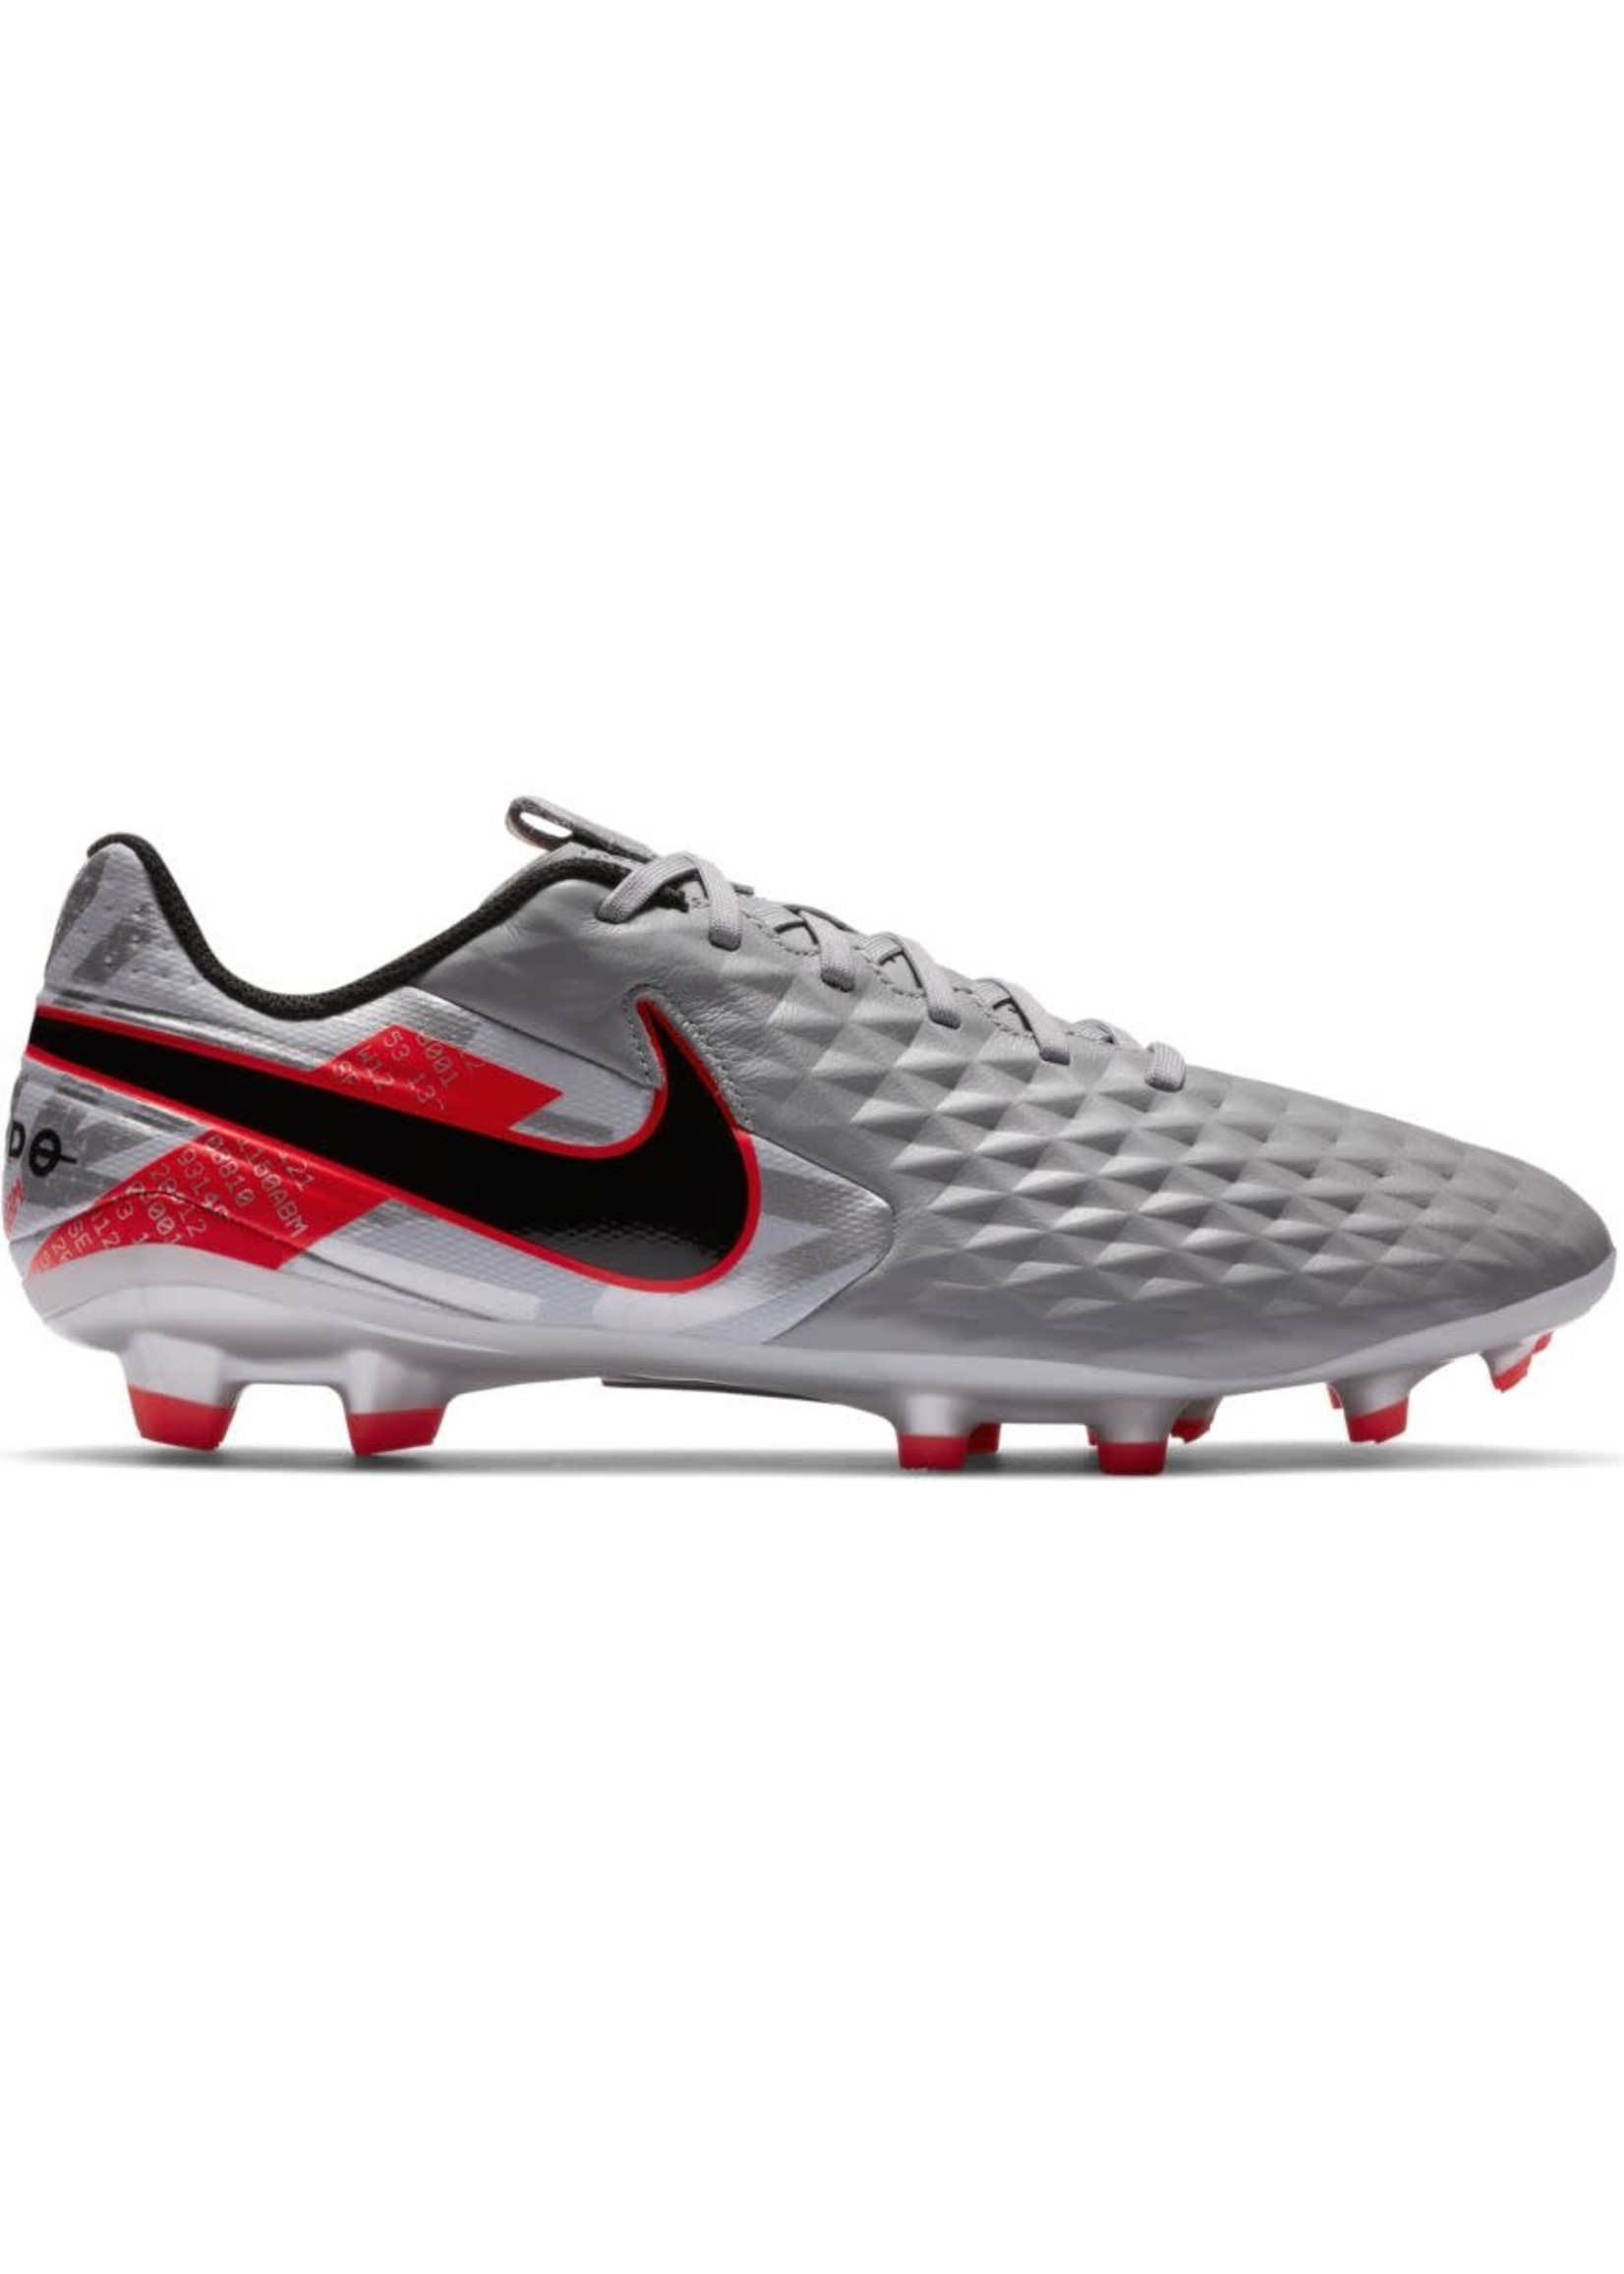 Nike Legend 8 Academy FG/MG - Grey/Red